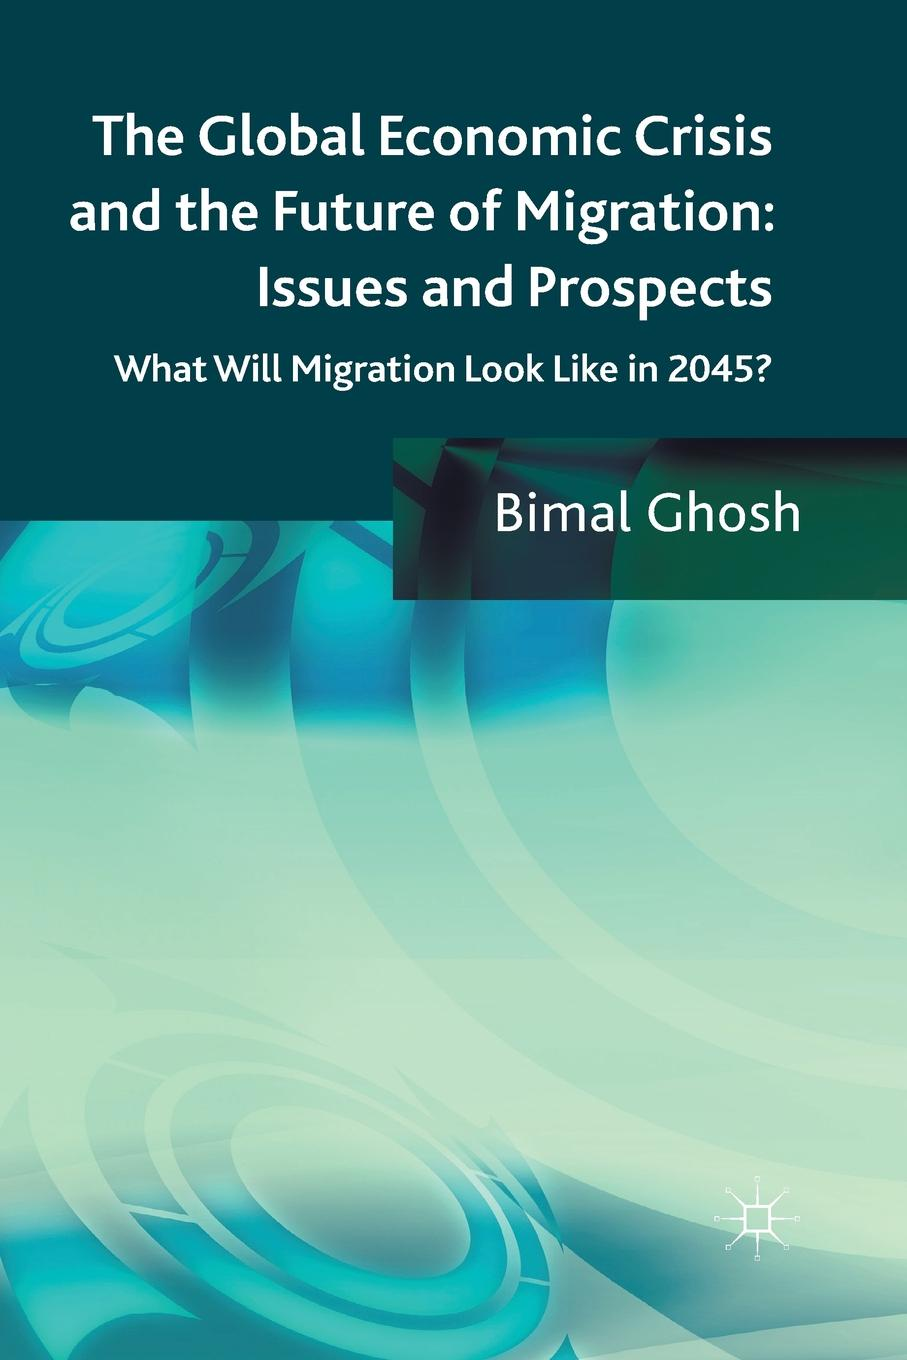 цены на Bimal Ghosh The Global Economic Crisis and the Future of Migration. Issues and Prospects : What will migration look like in 2045?  в интернет-магазинах